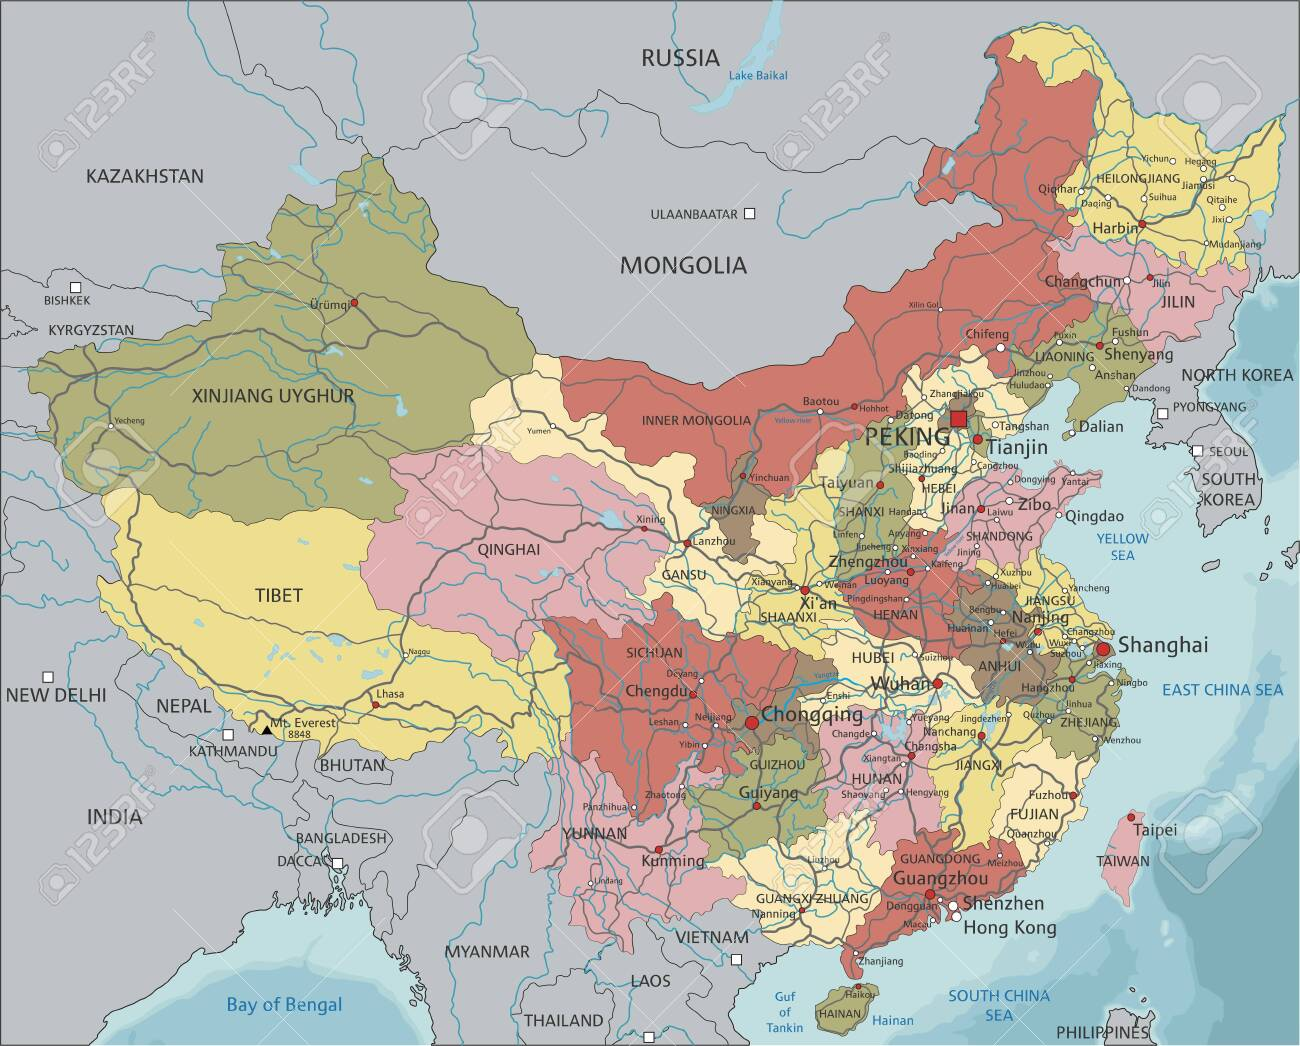 China Highly Detailed Editable Political Map With Labeling Royalty Free Cliparts Vectors And Stock Illustration Image 122606636